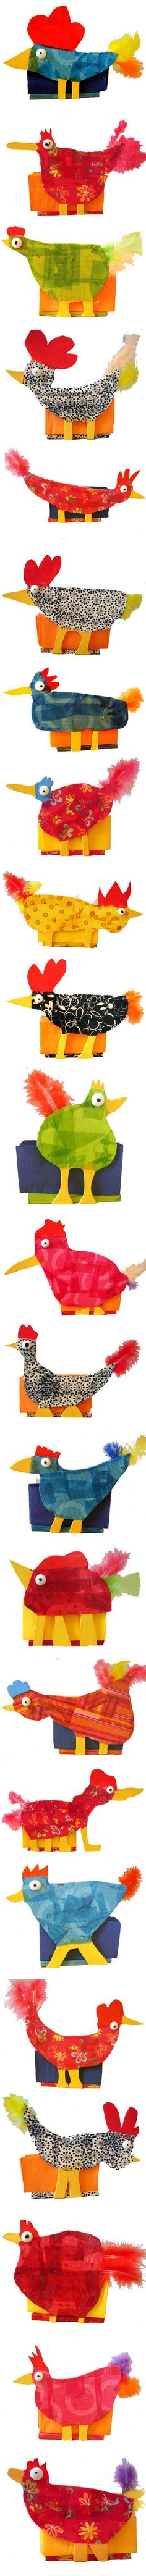 Chickens and roosters - paper mache.  I LOVE LOVE LOVE these!!!